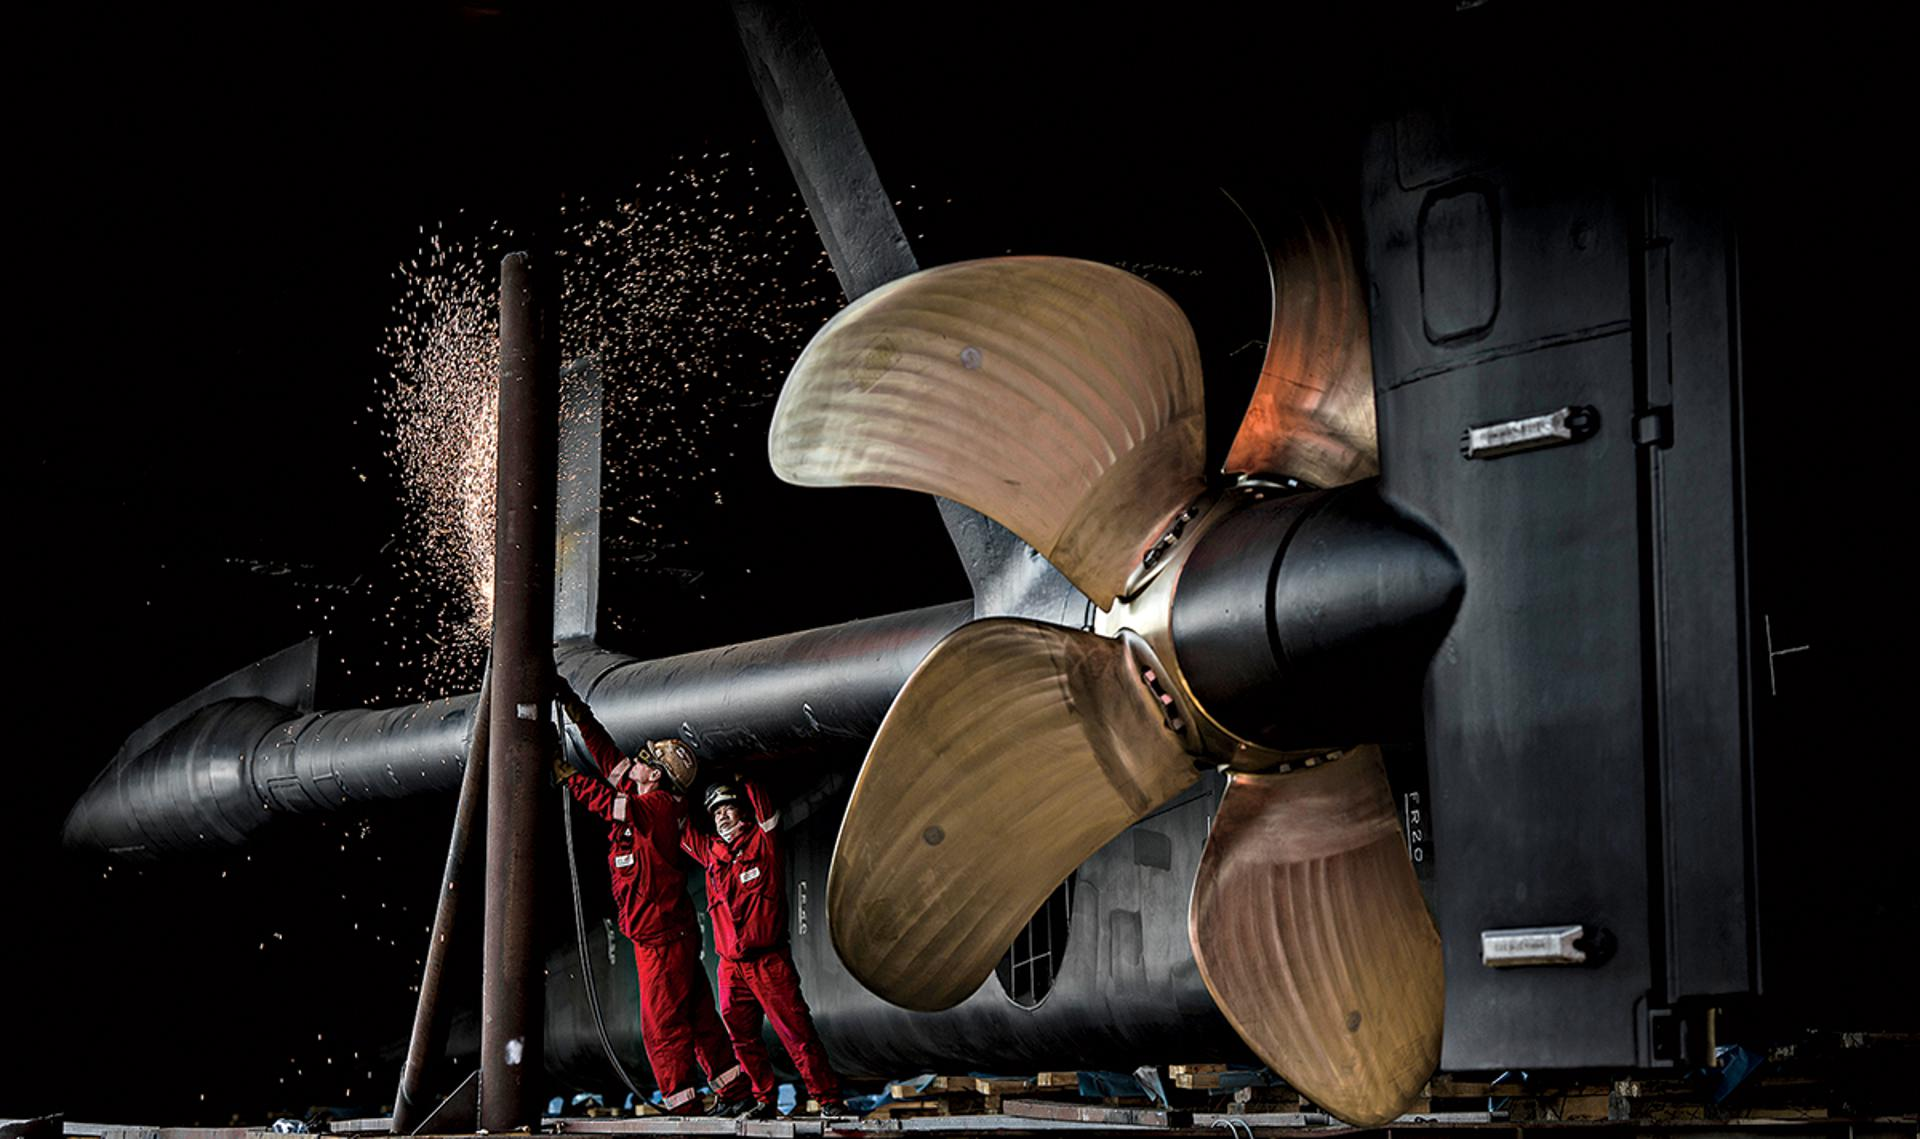 Spinning Their Wheels: Shipyard workers affix a mammoth propeller to Rev's stern. Construction is delayed due to the COVID-19 outbreak.